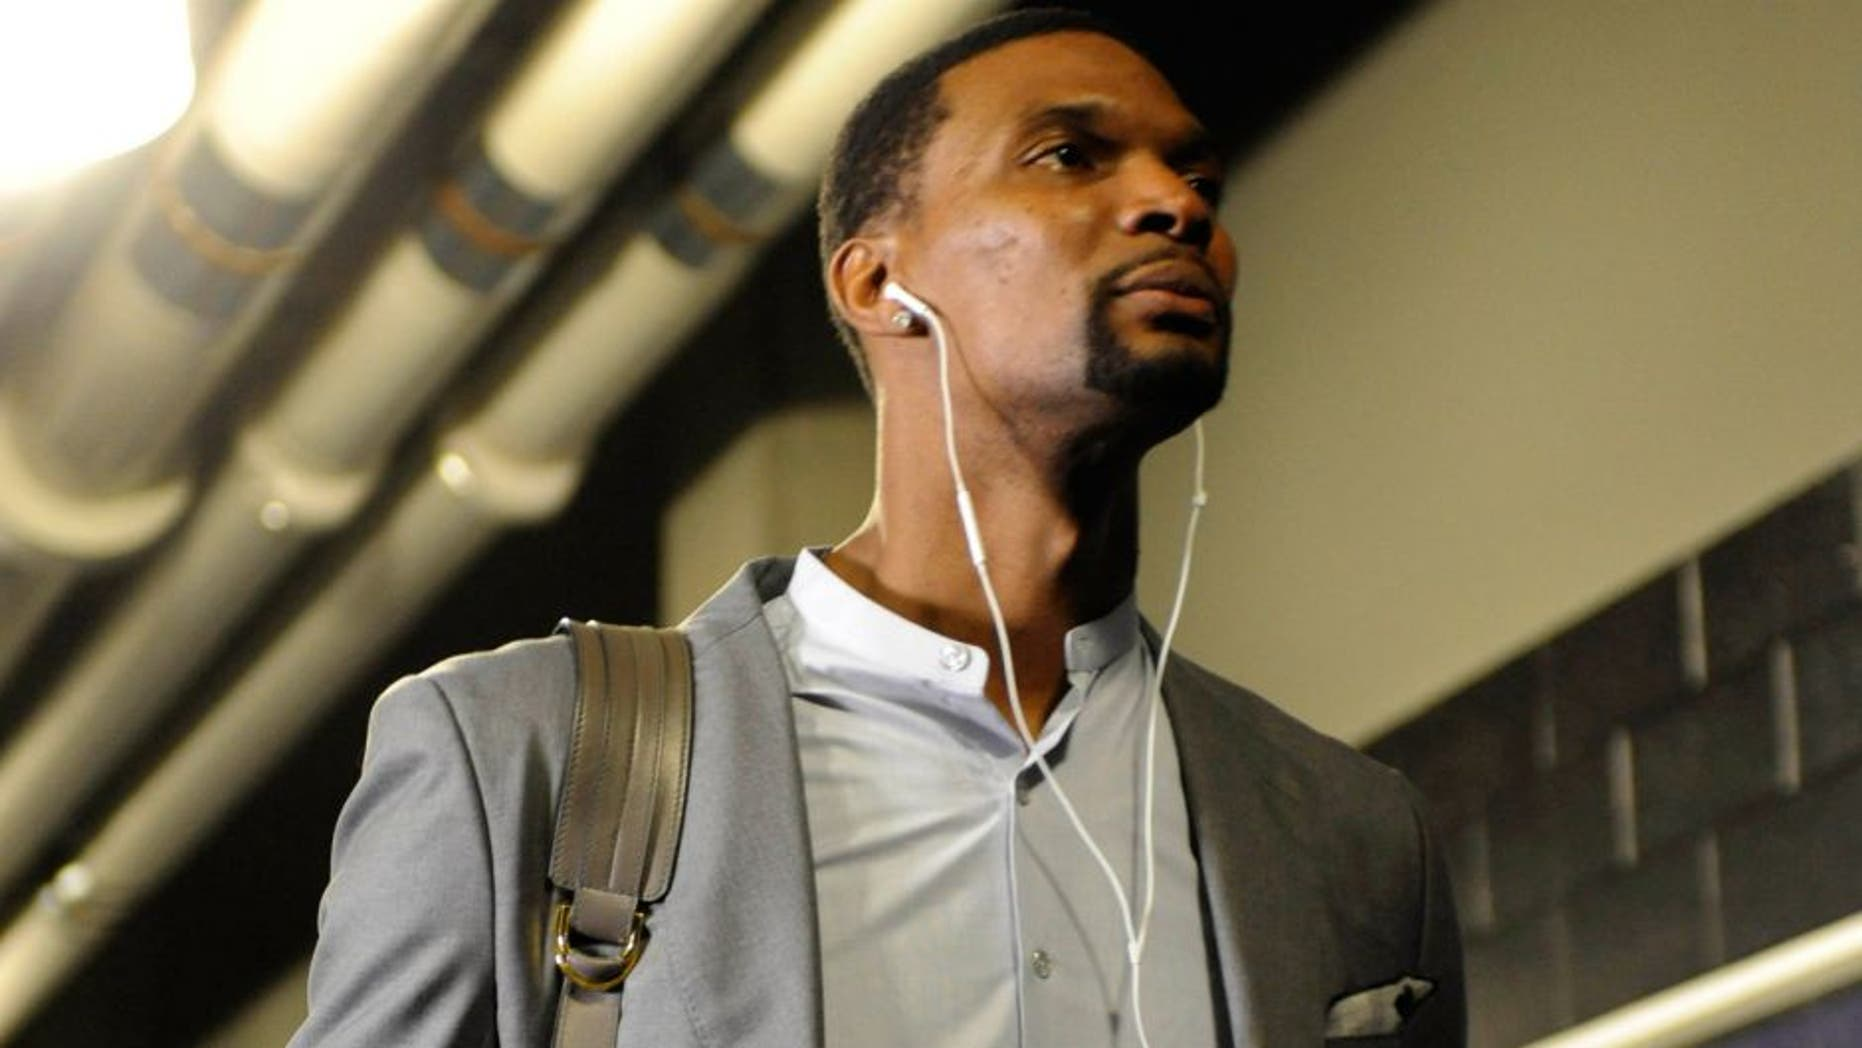 Apr 29, 2016; Charlotte, NC, USA; Miami Heat forward Chris Bosh (1) arrives to to the arena before game six of the first round of the NBA Playoffs against the Charlotte Hornets at Time Warner Cable Arena. Mandatory Credit: Sam Sharpe-USA TODAY Sports